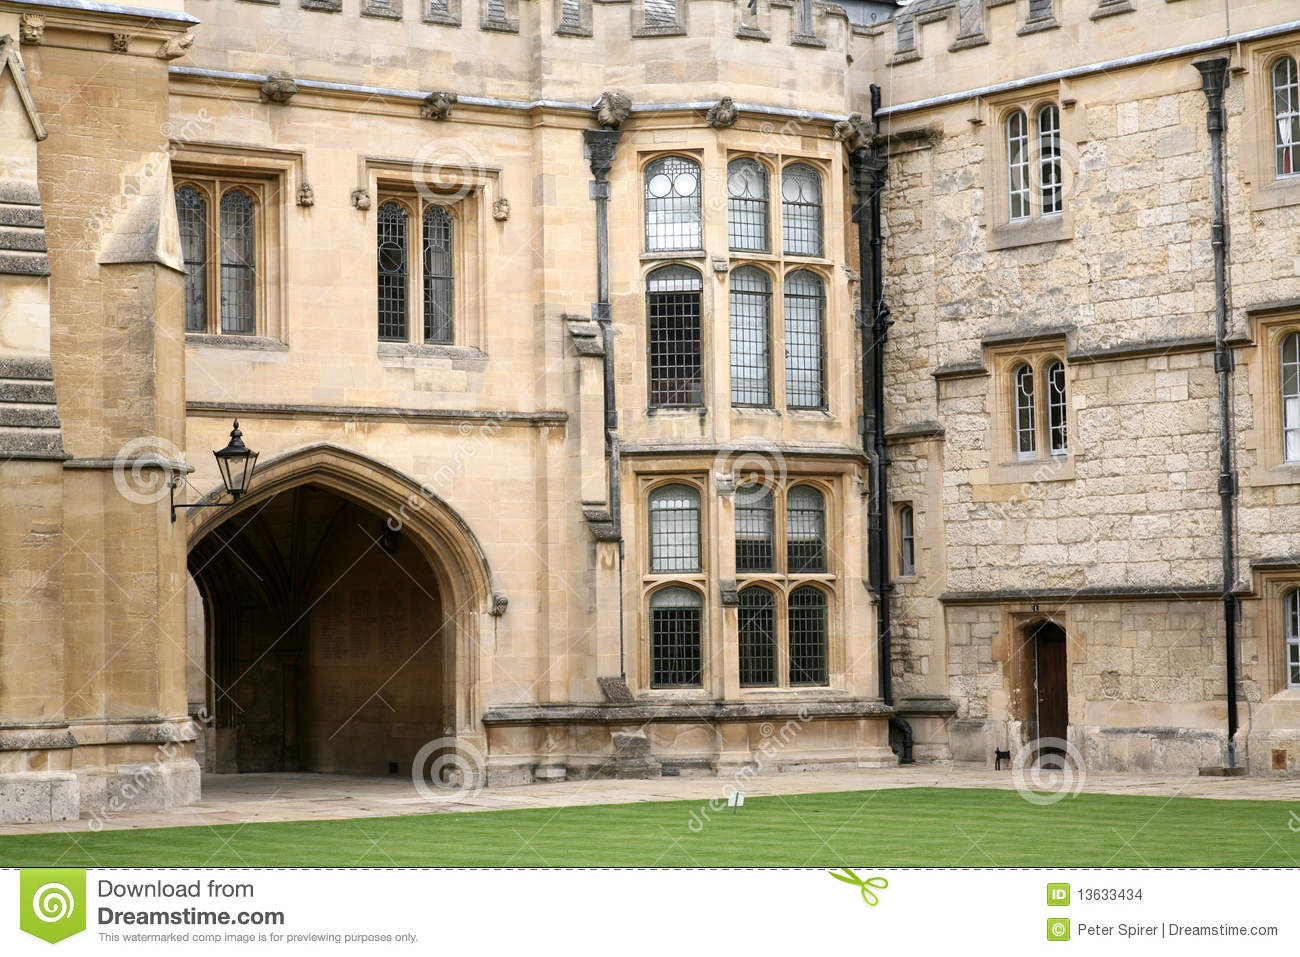 University dating oxford Introduction and